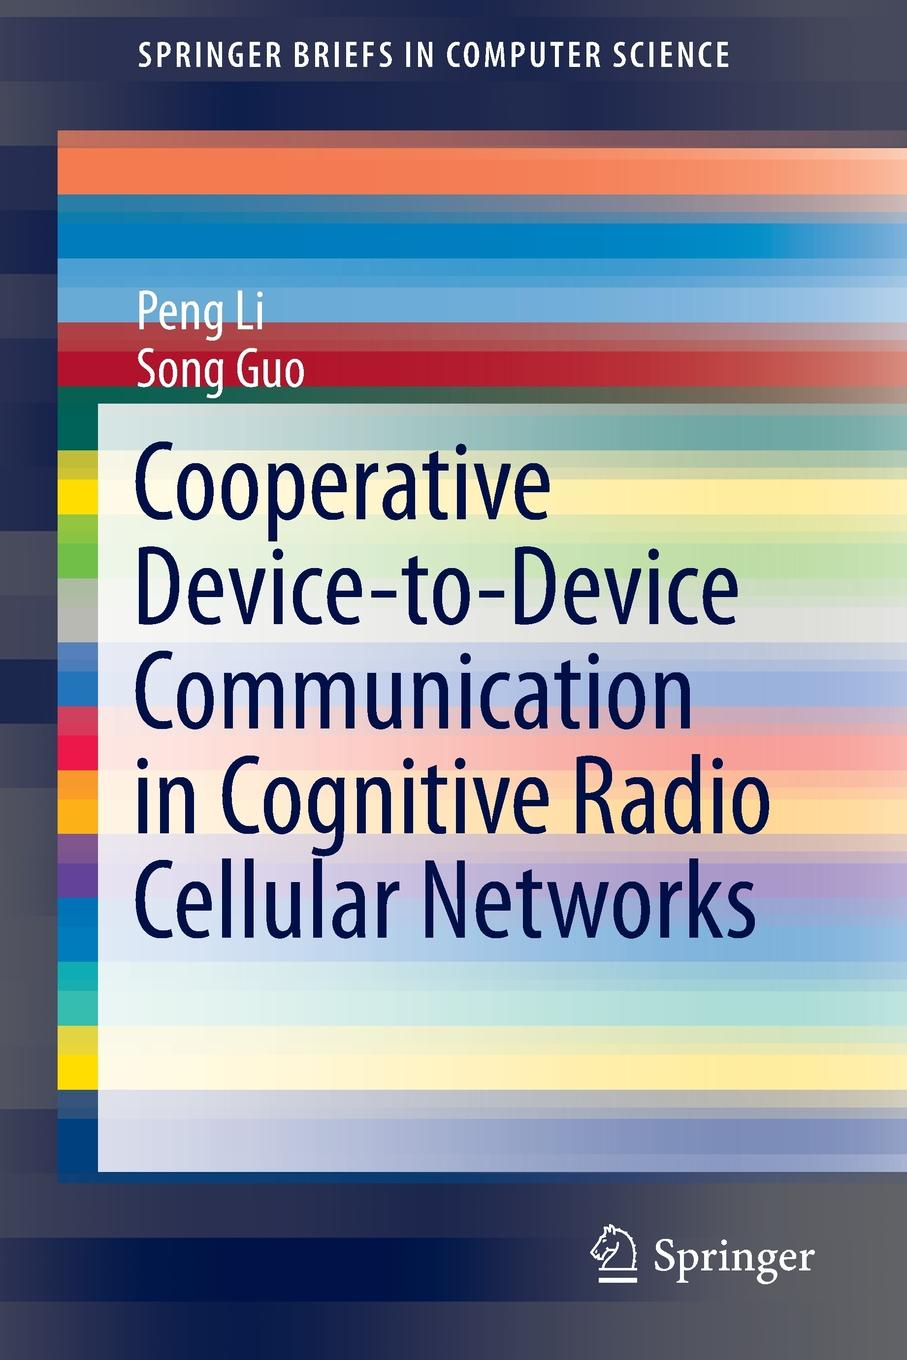 лучшая цена Peng Li, Song Guo Cooperative Device-to-Device Communication in Cognitive Radio Cellular Networks